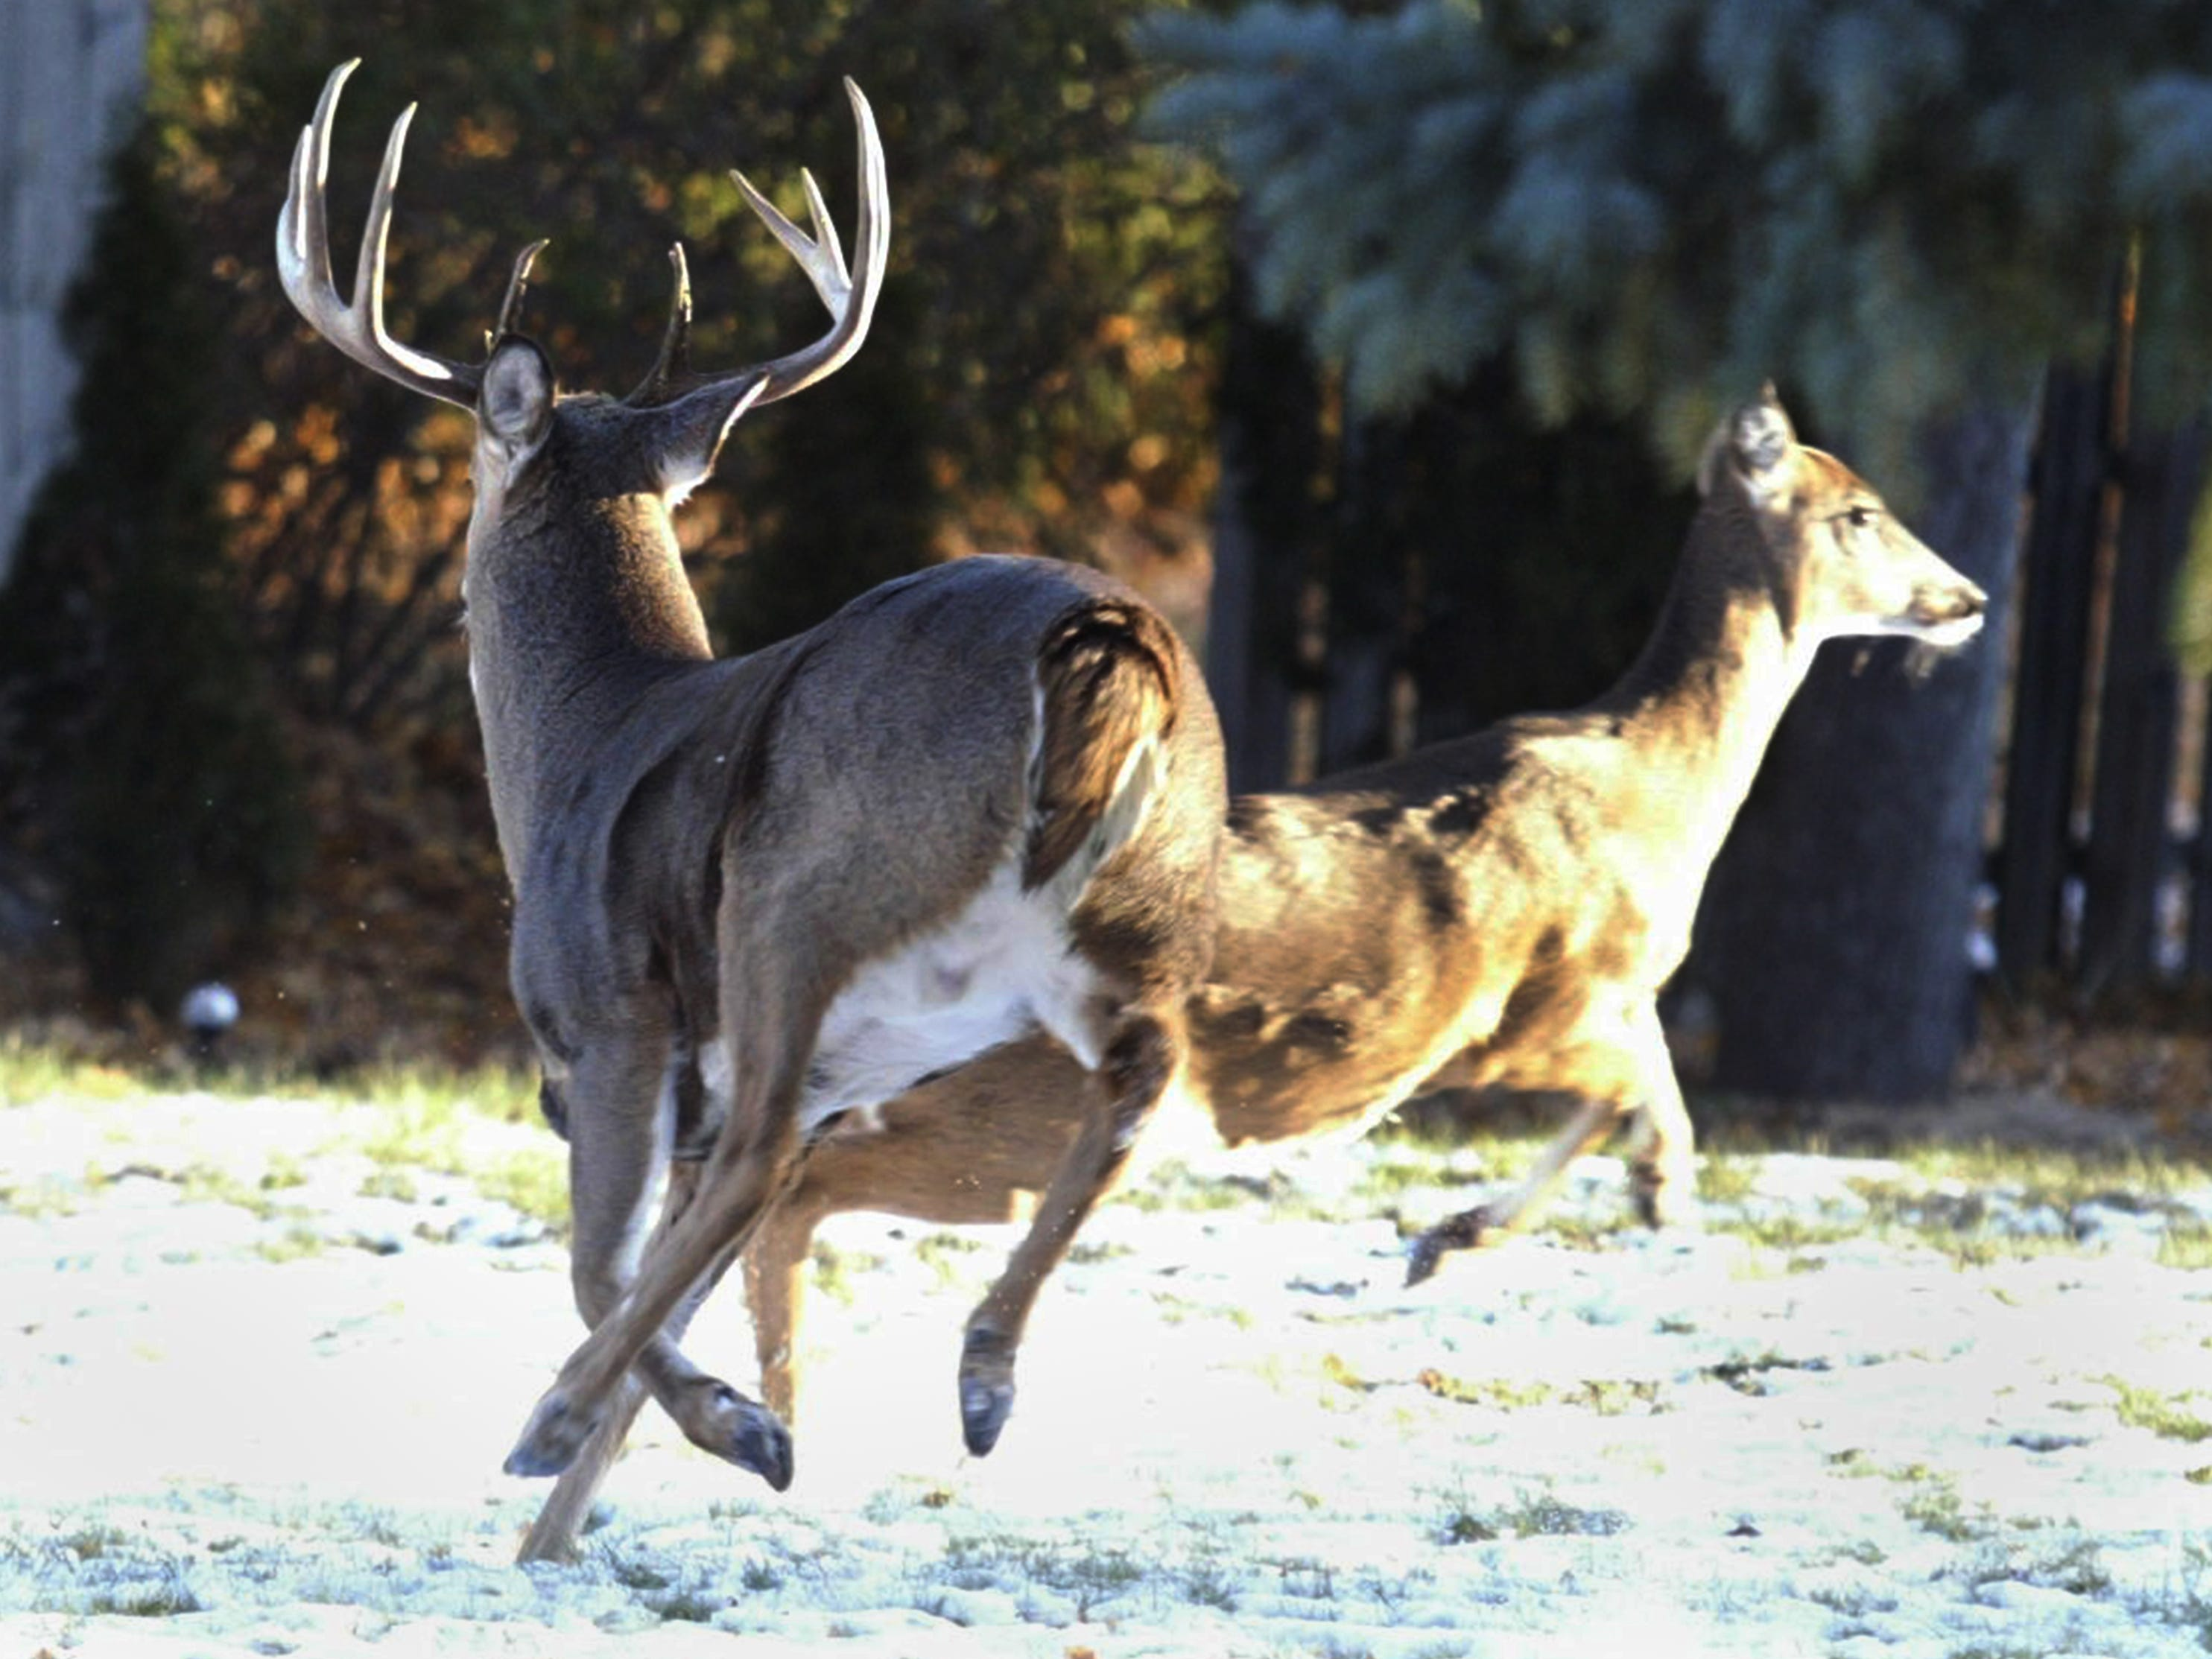 A buck and a doe prance around in the back yard of a City of Sheboygan home in the 1000 block of N. 23rd Street, Wednesday November 14, 2018, in Sheboygan, Wis.